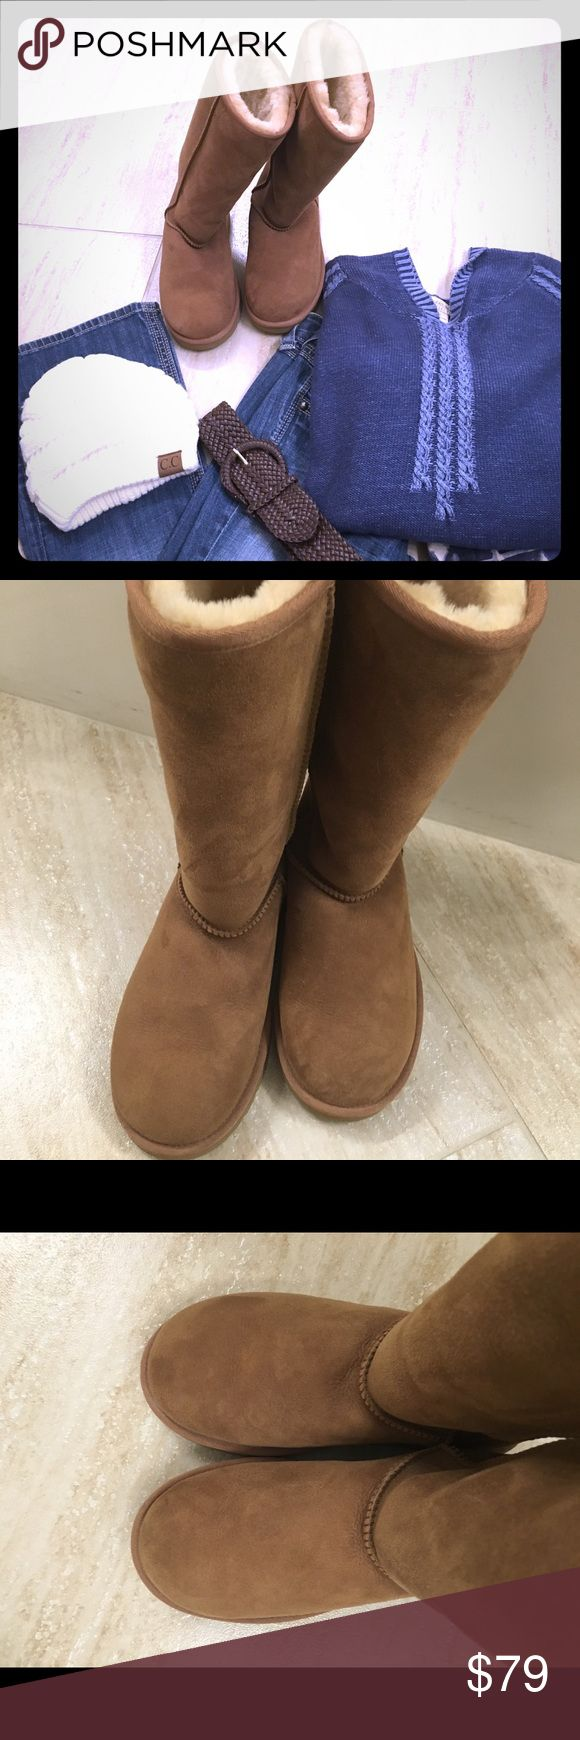 """Original Tall Australian Uggs (Cream) These genuine original tall Uggs are in pristine condition. I only wore them a couple of times because they were too tight on me! Original tall Uggs with 11 3/4"""" shaft height. They deliver Uggs signature comfort with Twin Faced sheepskin and a plush wool insole and light weight flexible outsole. Eva model. No stains or scuffs that I can see! Excellent buy for someone to snatch up! UGG Shoes Winter & Rain Boots"""